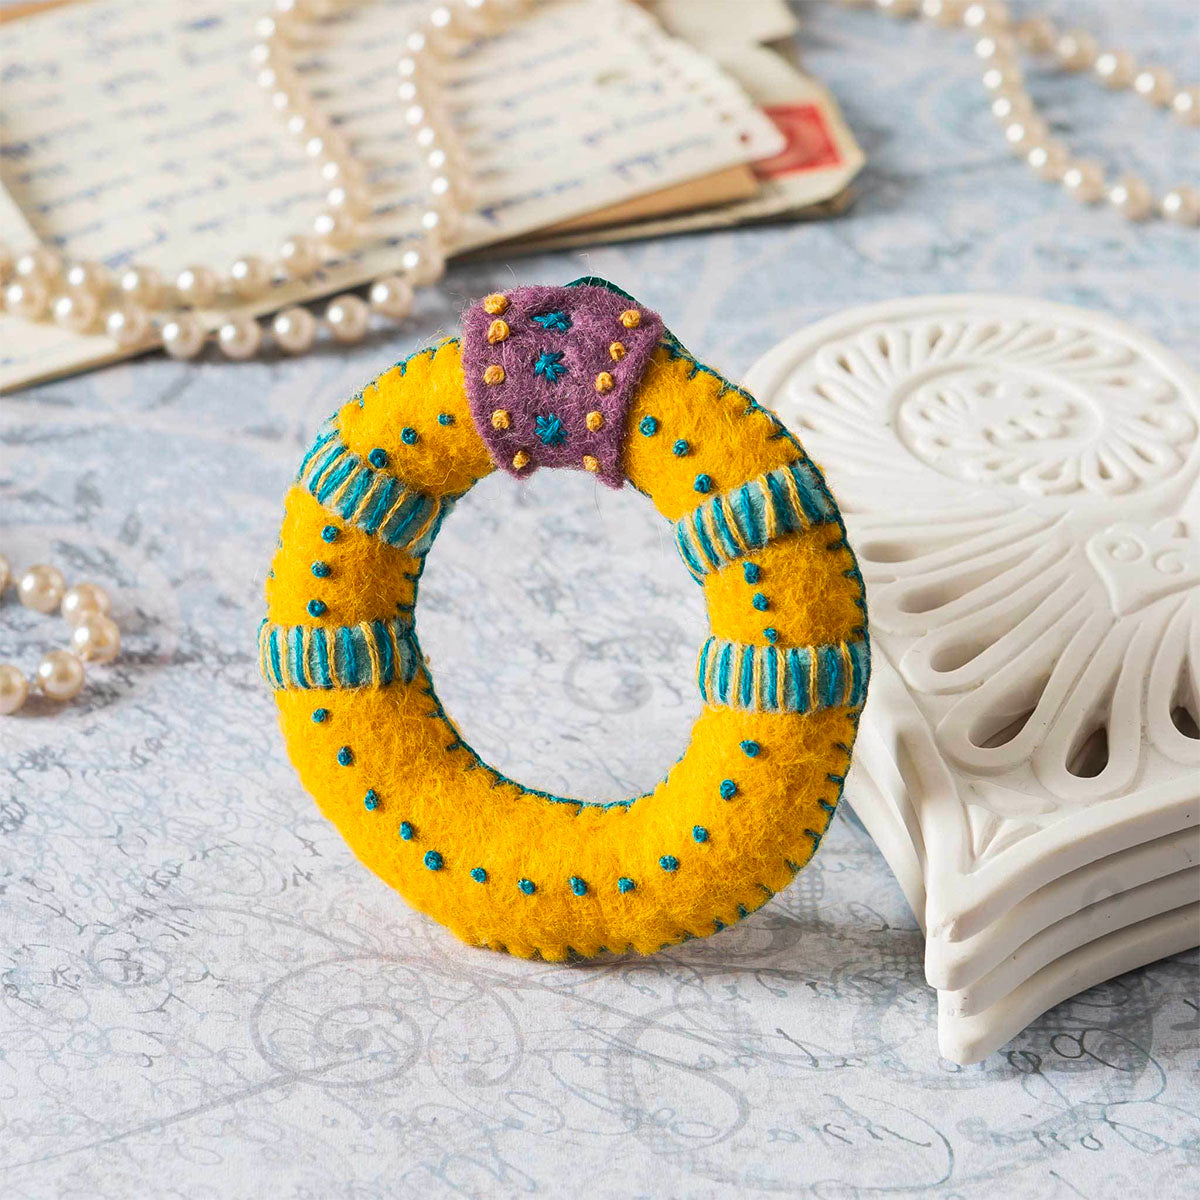 12 Days of Christmas Felt Ornament Kit - Gold Ring